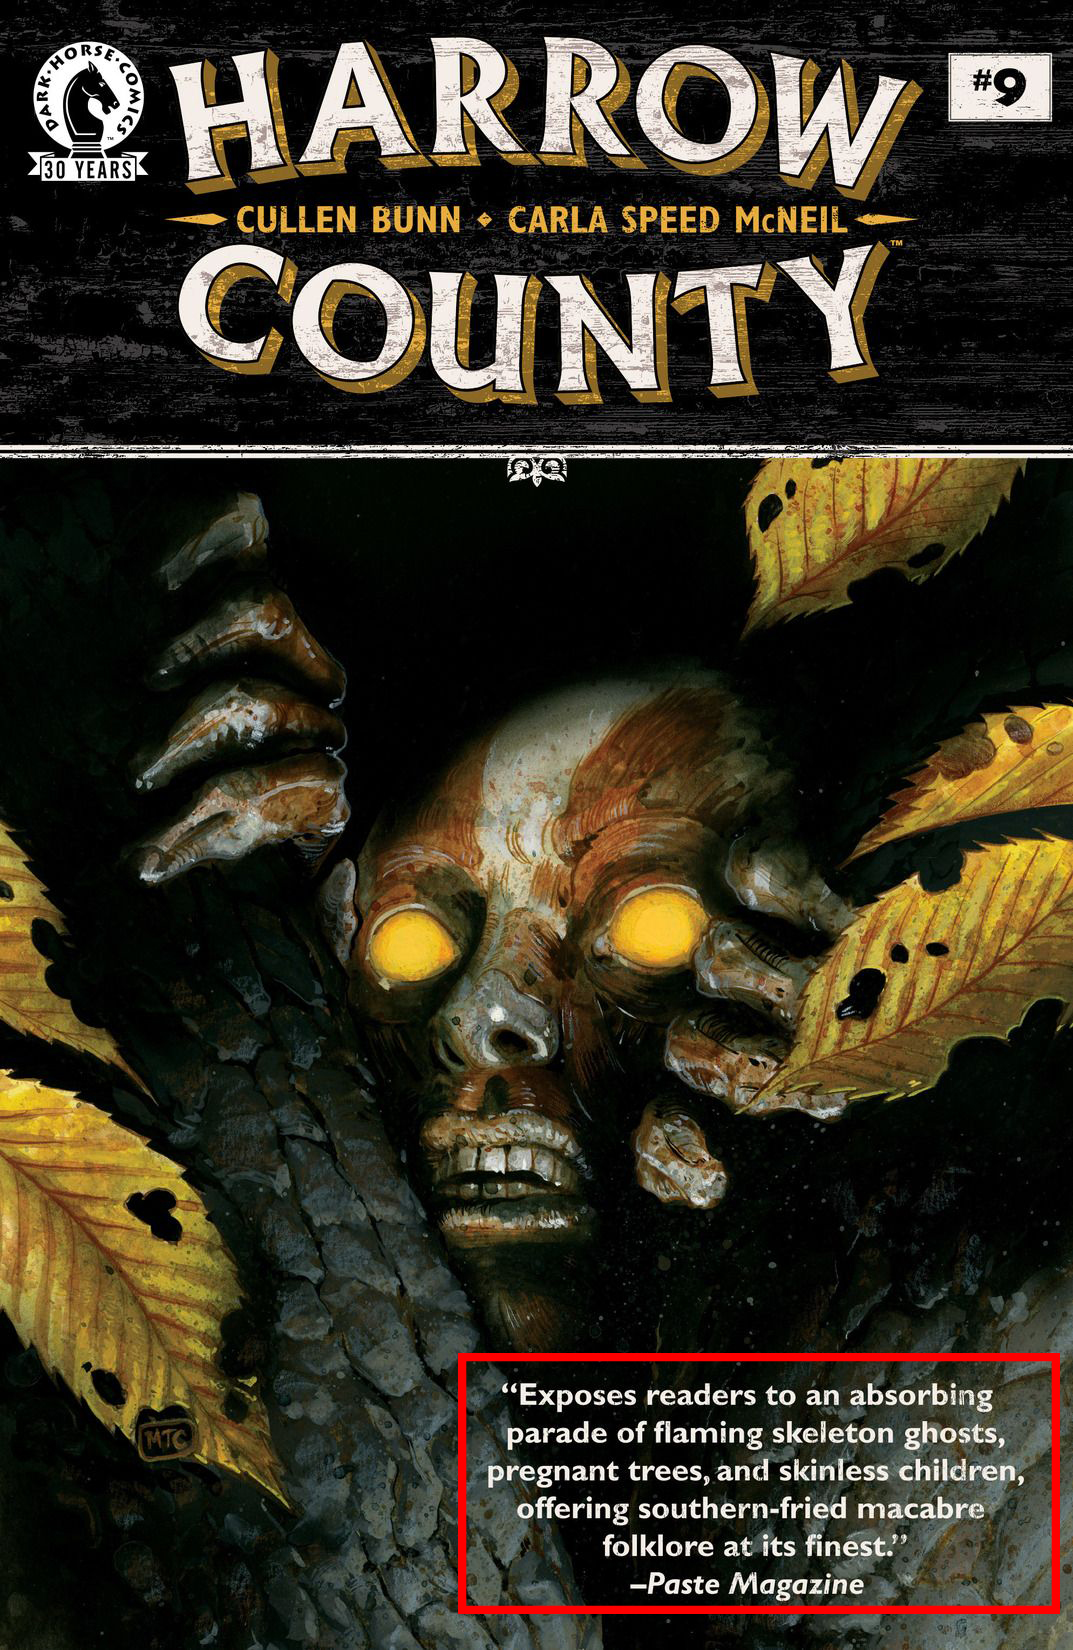 Harrow County  #9, by Cullen Bunn and Carla Speed McNeil